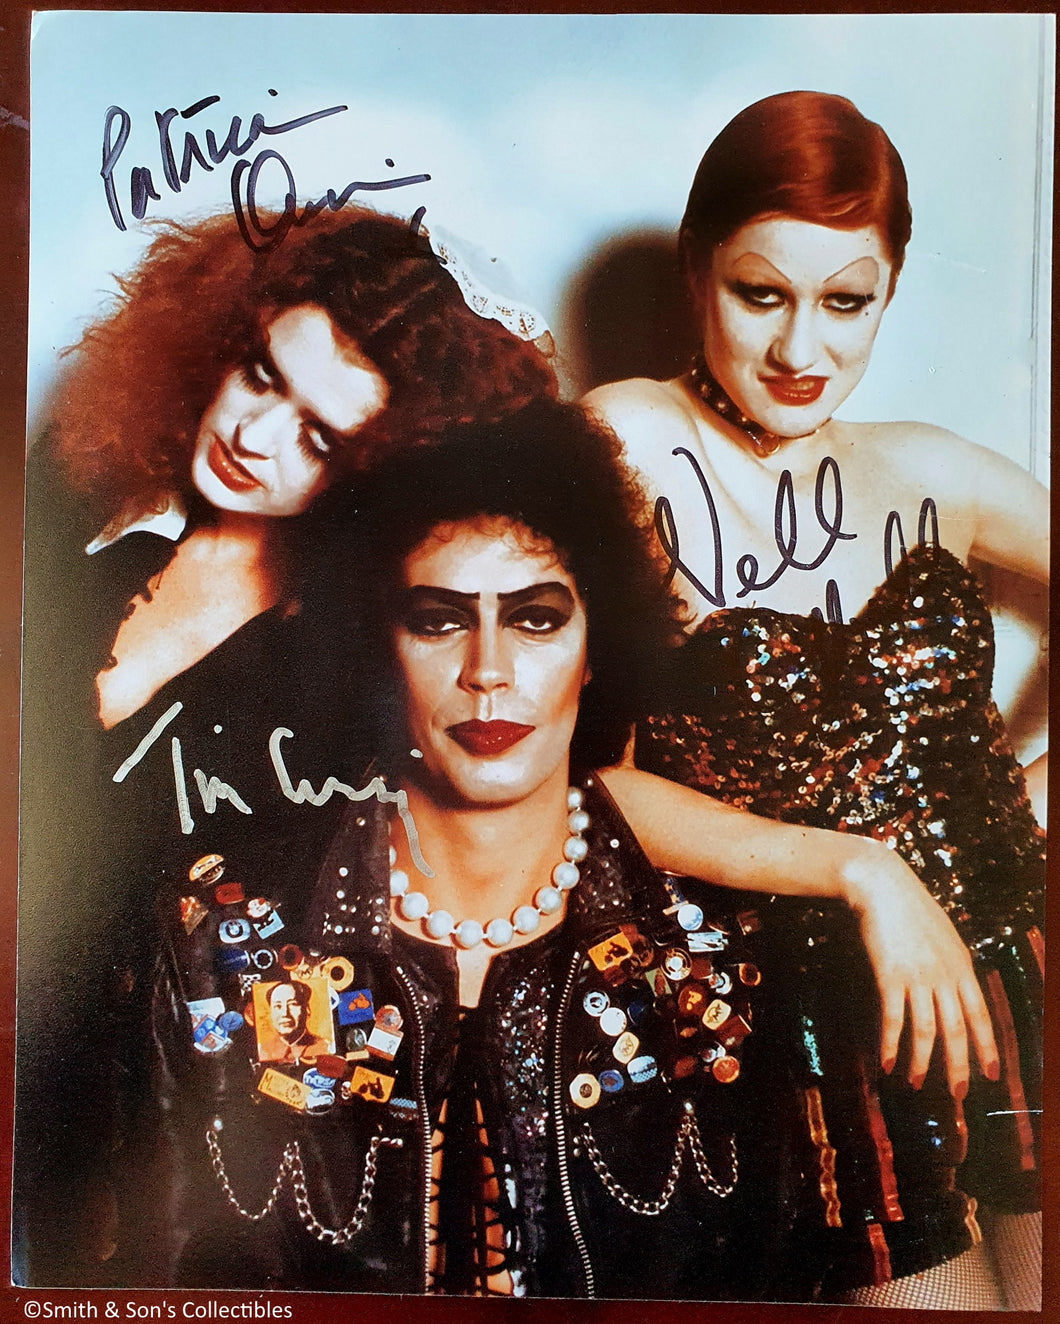 Tim Curry, Quinn & Campbell Autographed Rocky Horror Picture Show 8x10 Photo COA #RH78745